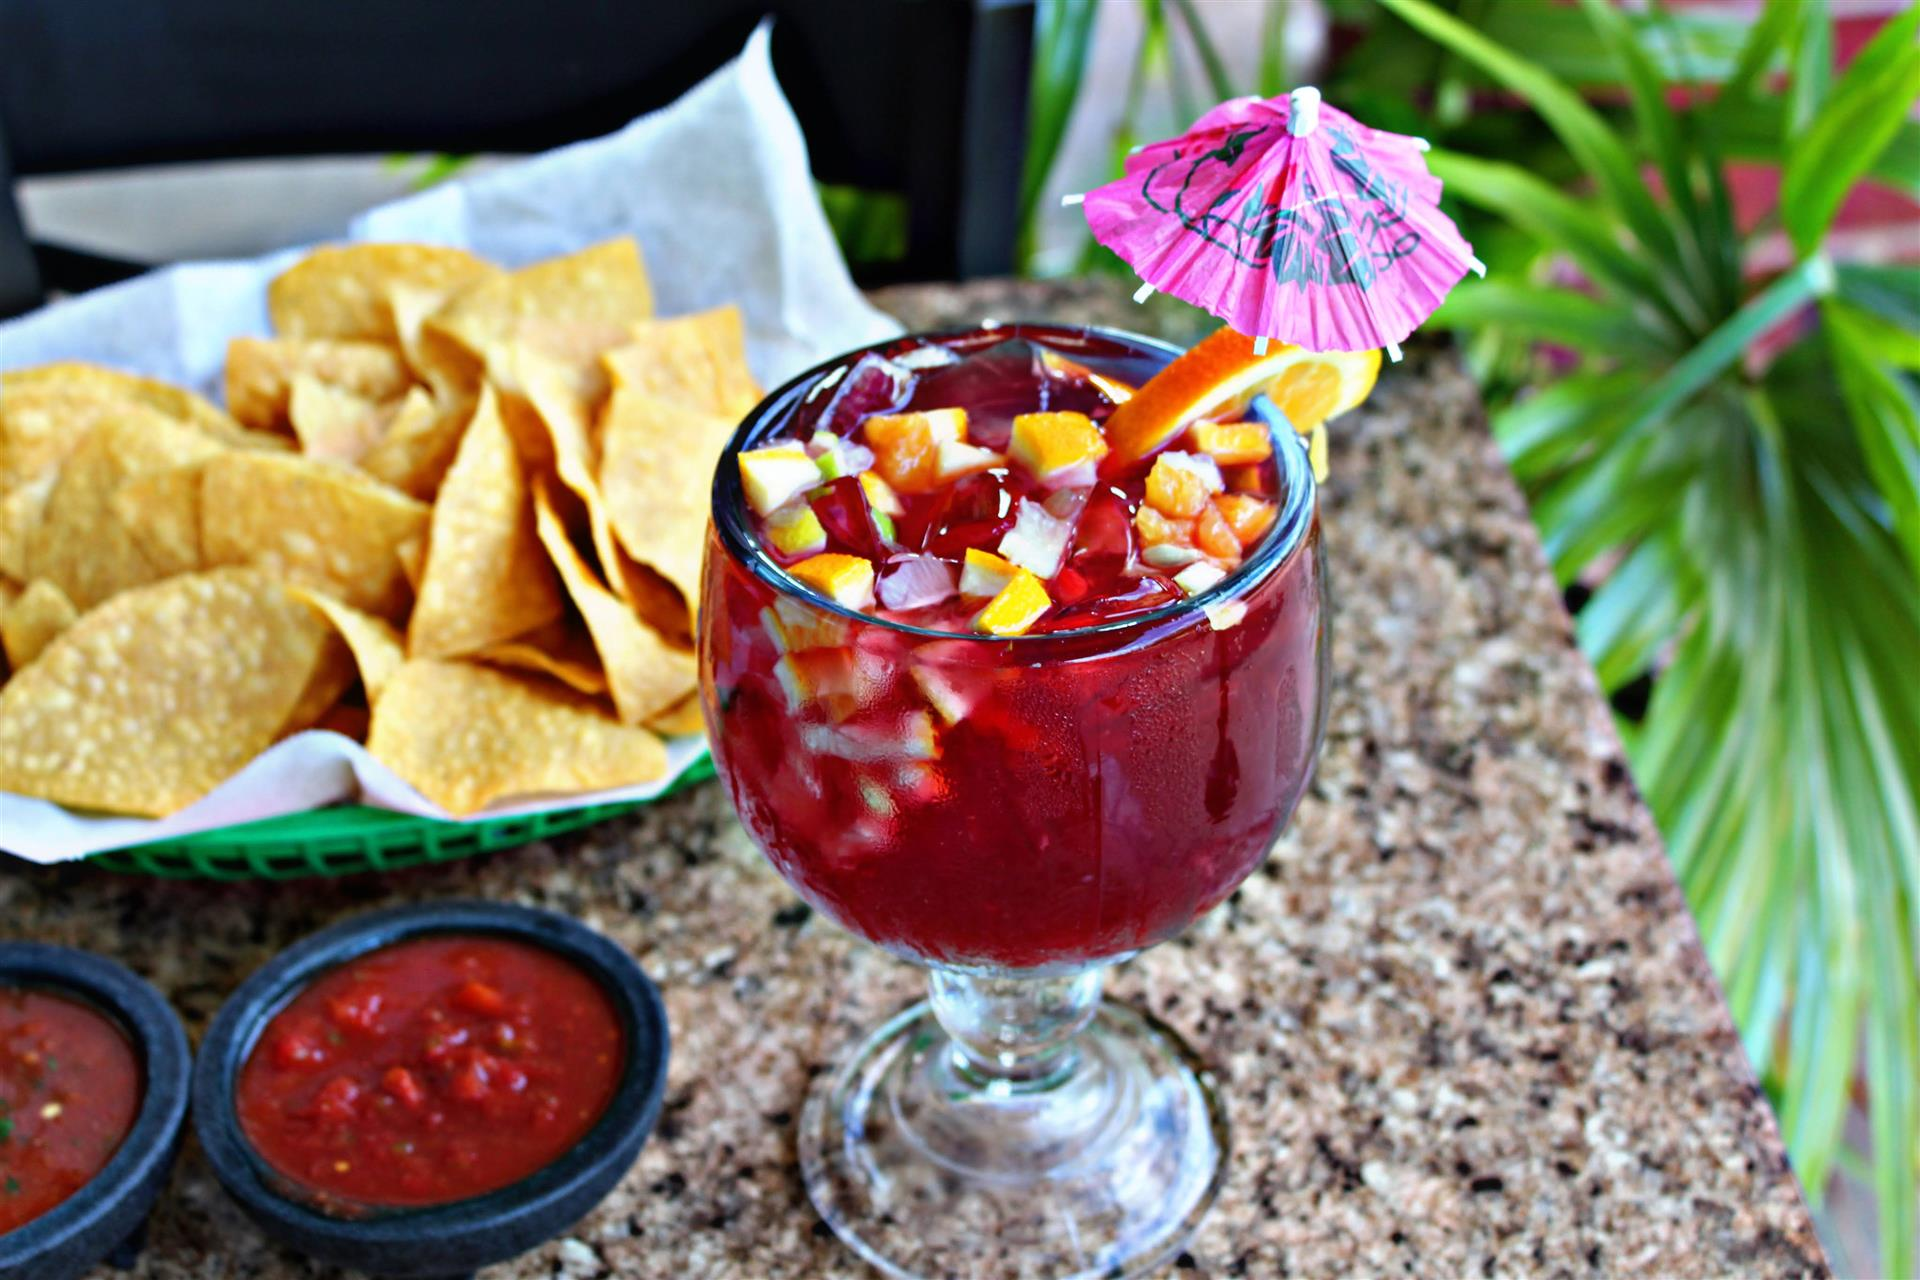 alcoholic drink with fruit and a side of chips and salsa